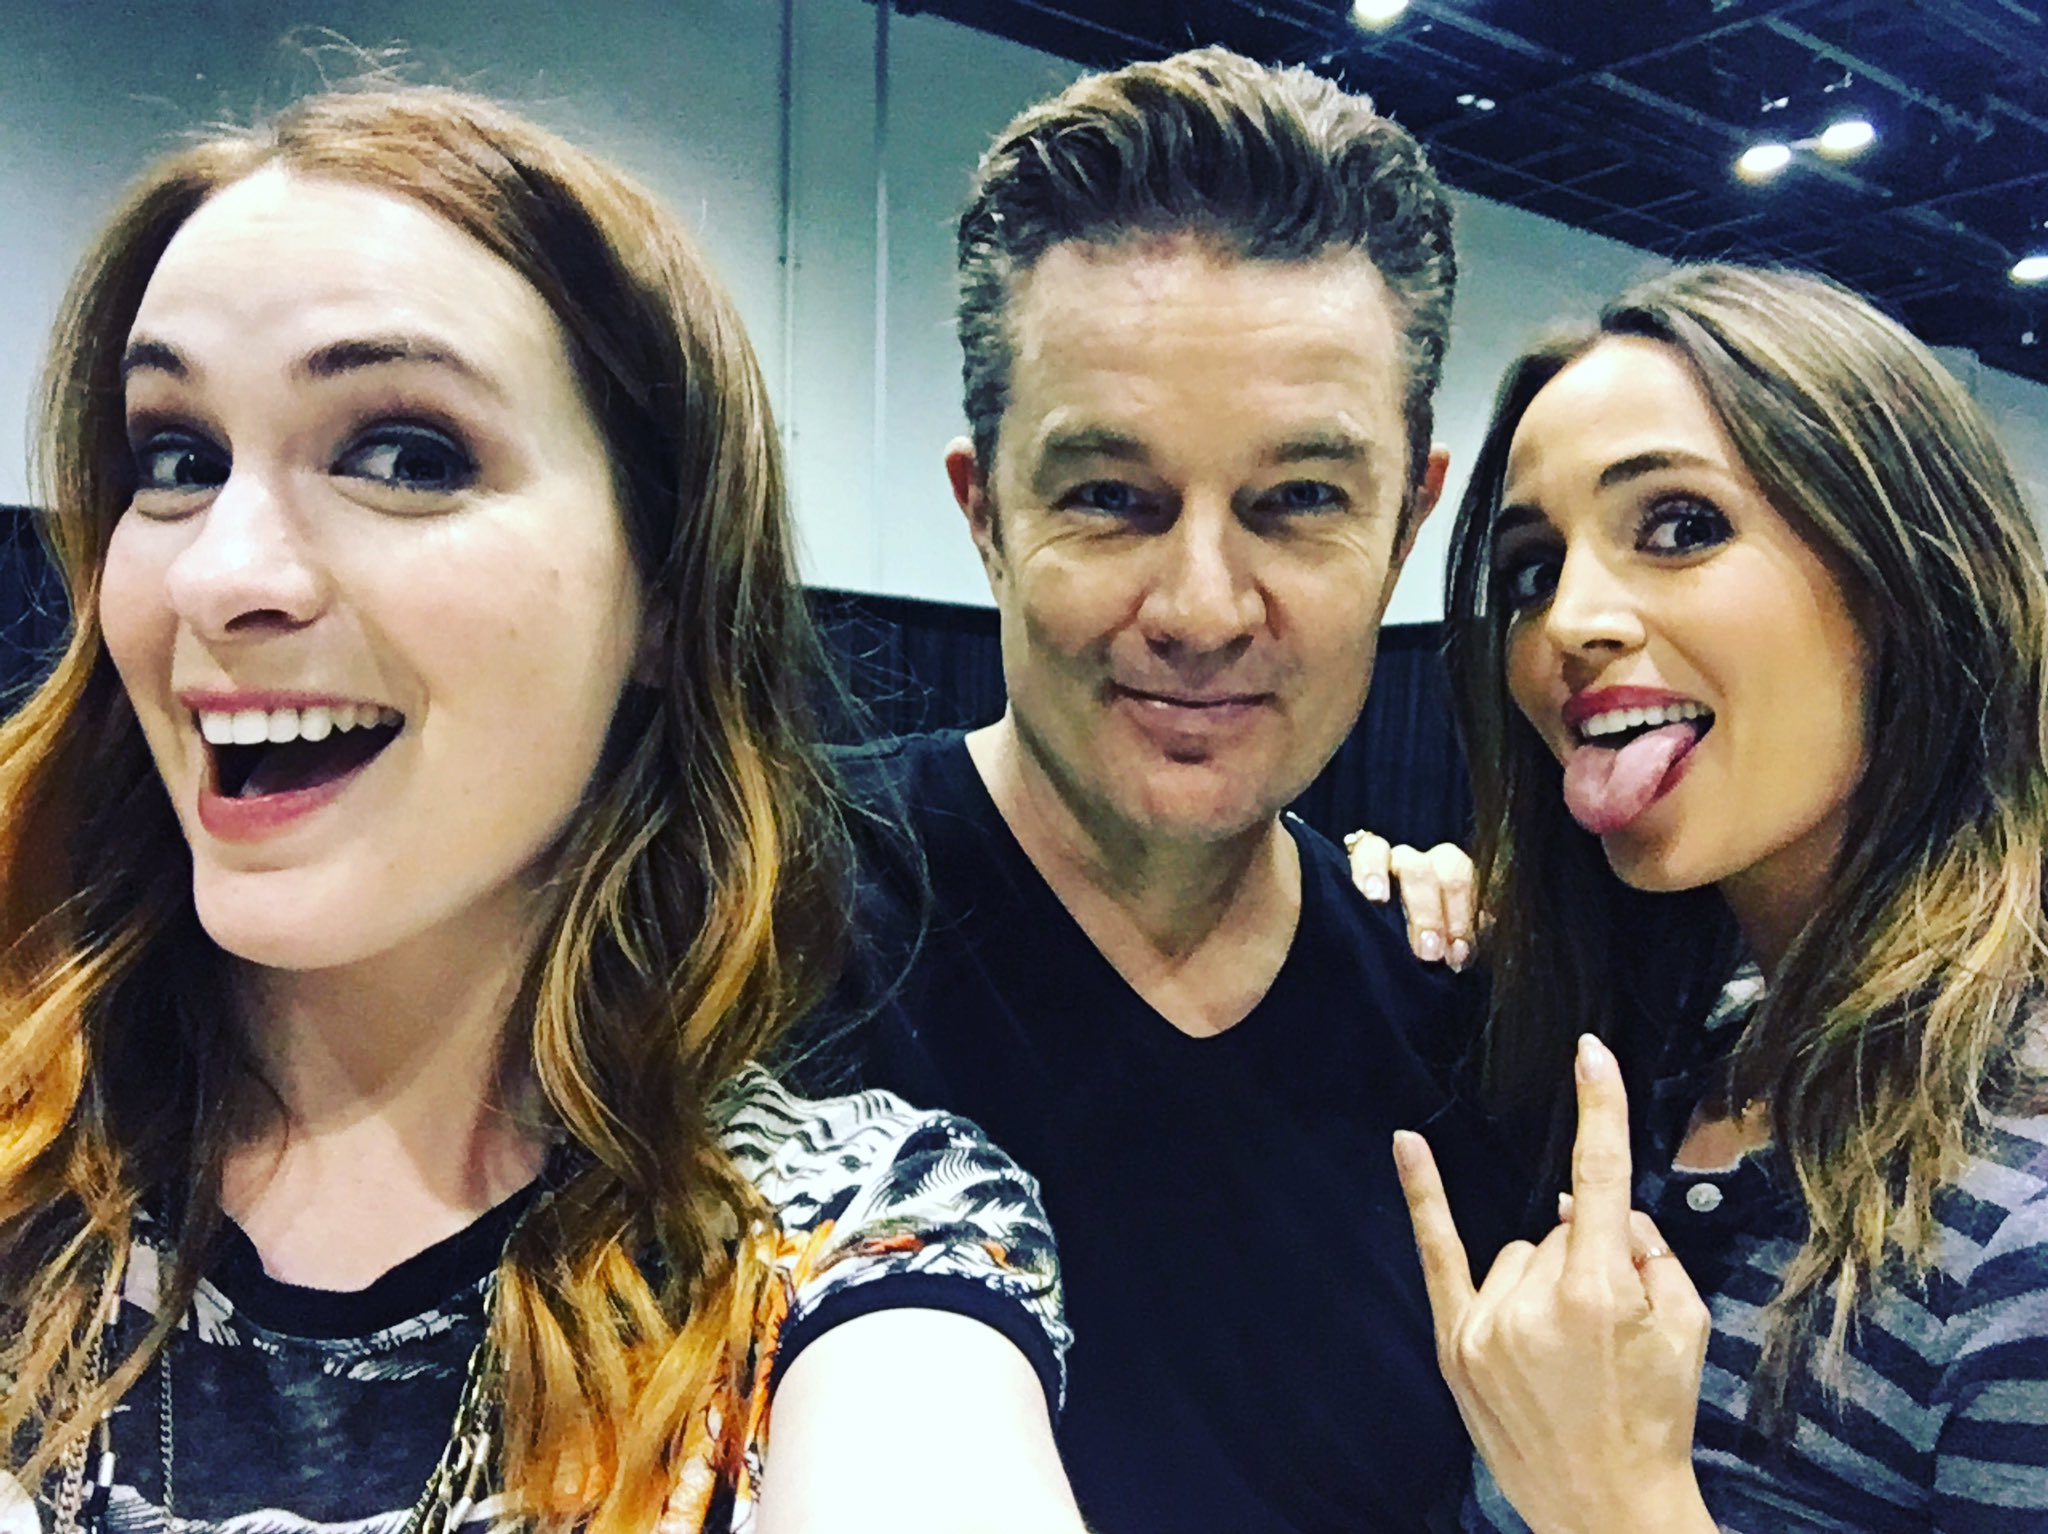 Buffy reunion at MegaCon to close out the weekend! @elizadushku @JamesMarstersOf https://t.co/BFkpBJfaY8